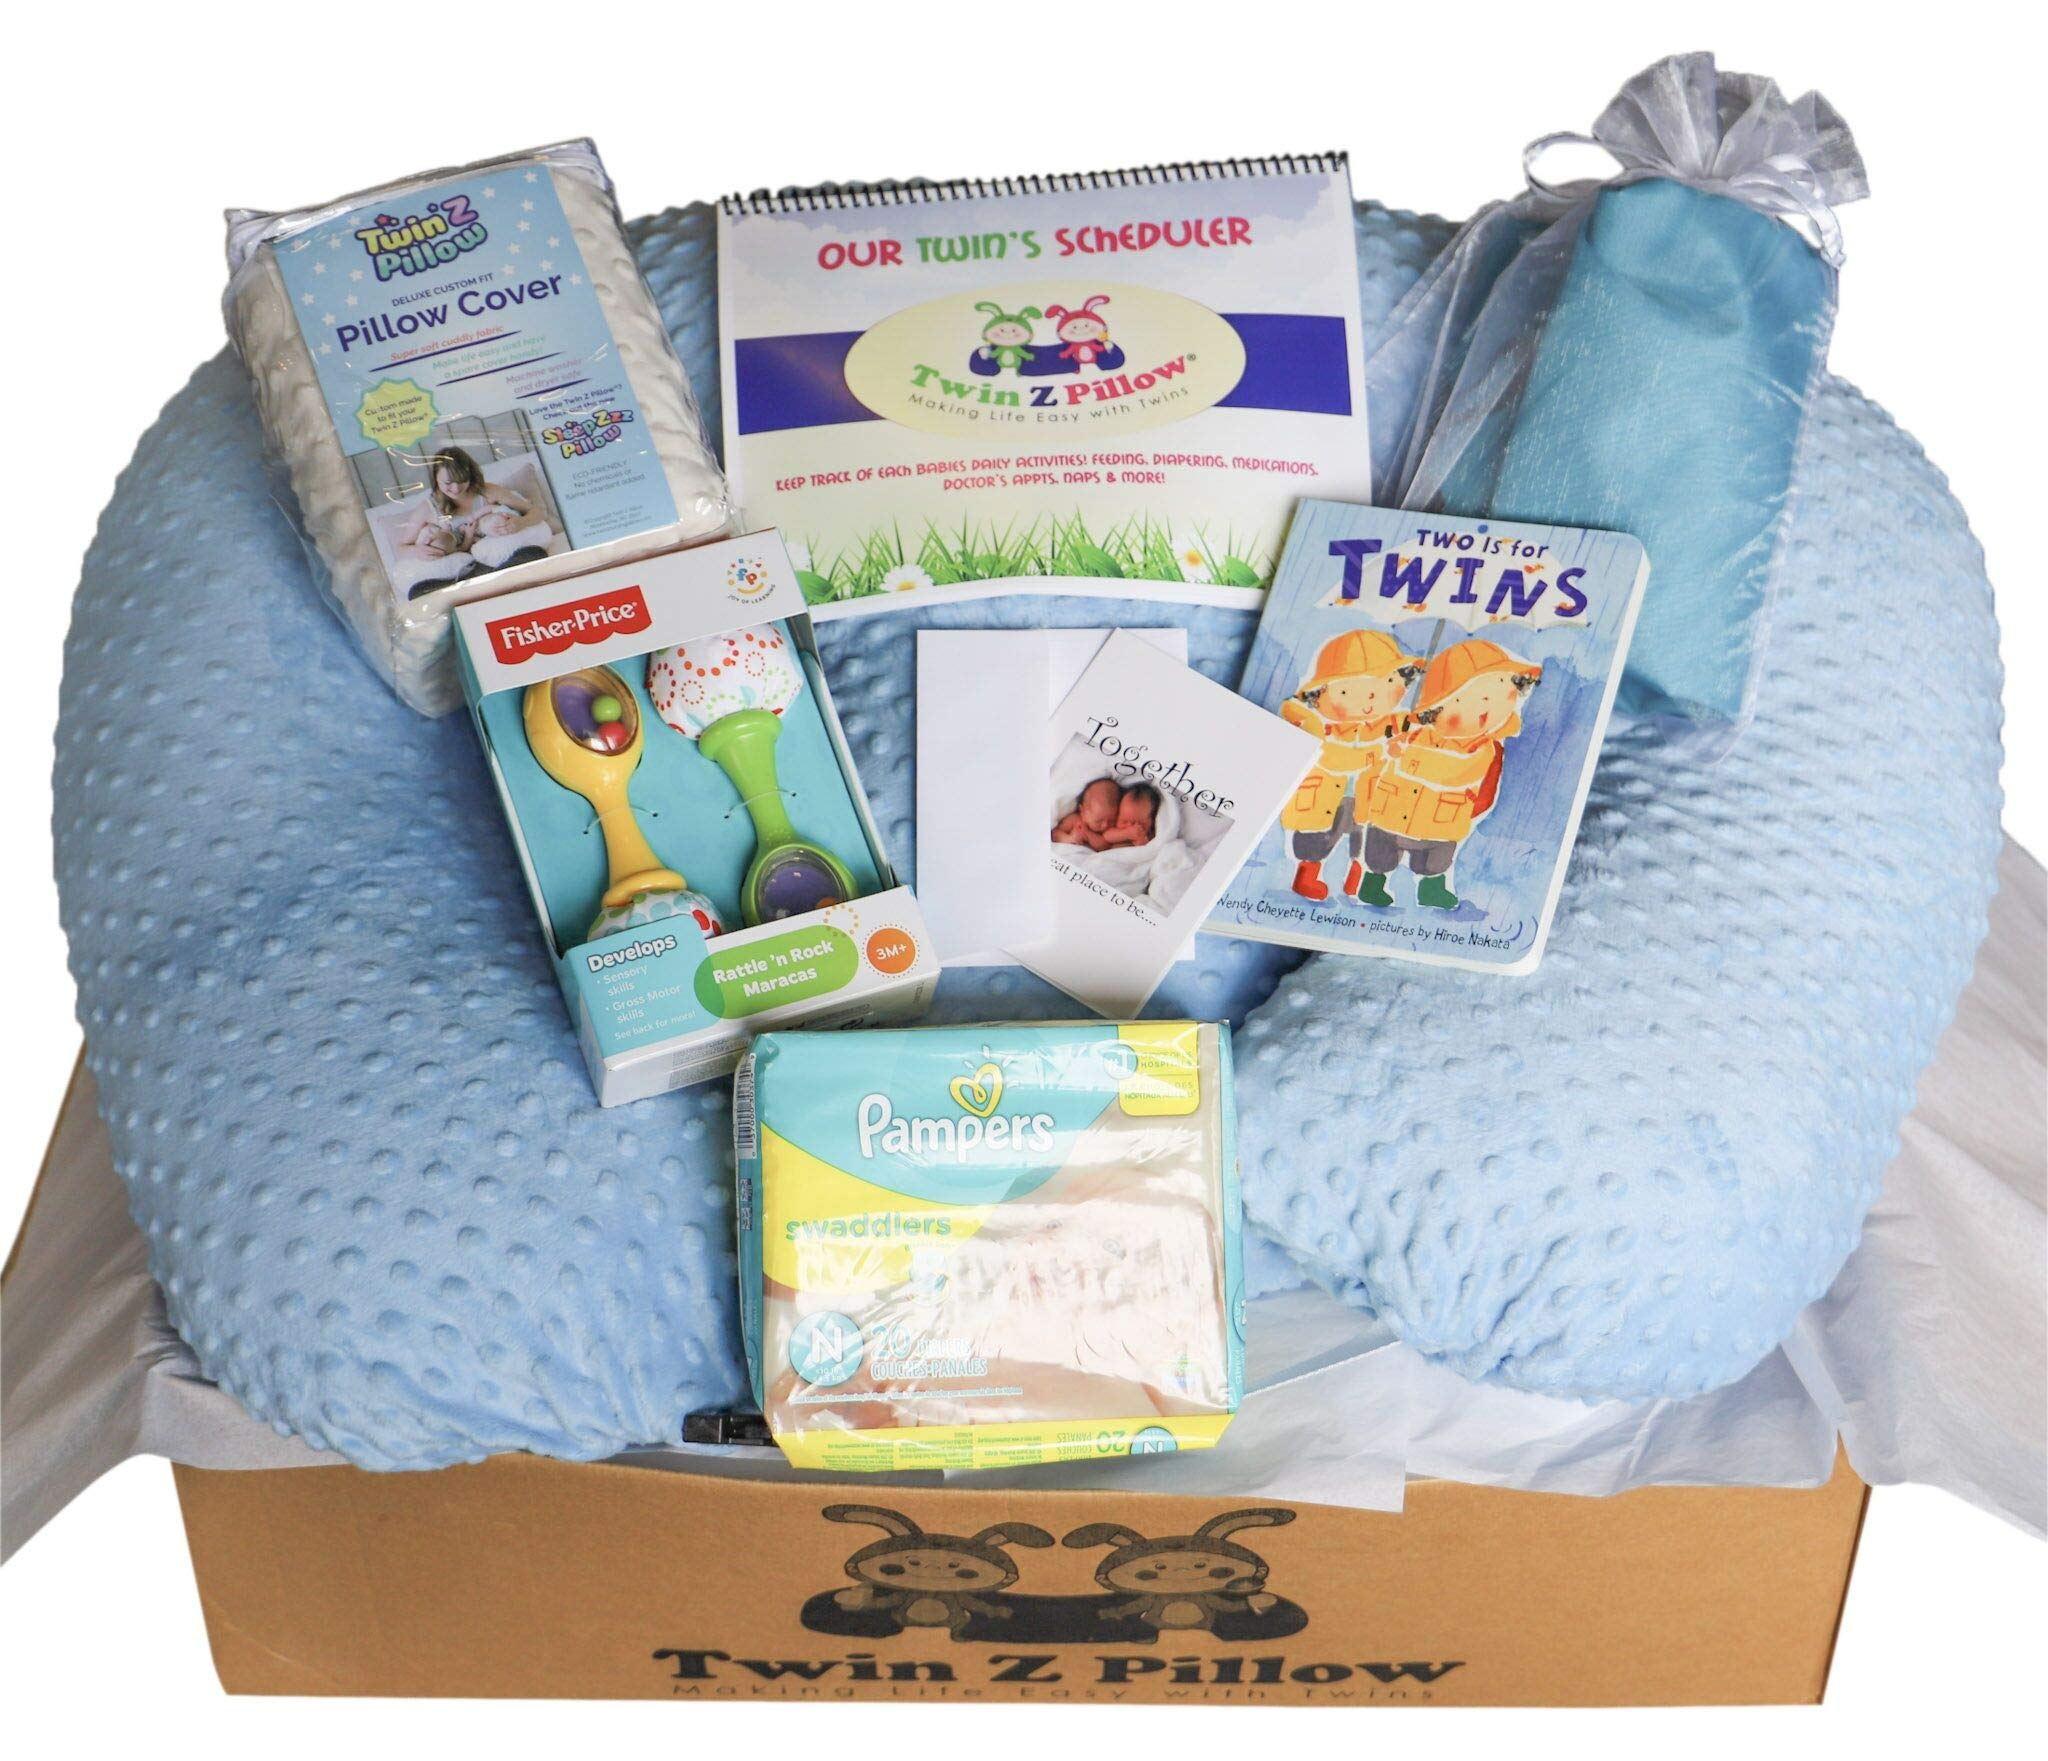 Twin Z Pillow Gold Gift Box - Twin Z Pillow + 1 Cream & 1 Blue Cover + 1 Book + 1 Pack Diapers + 1 Scheduler + 1 Travel Bag + 1 Toy + Twin Baby Card